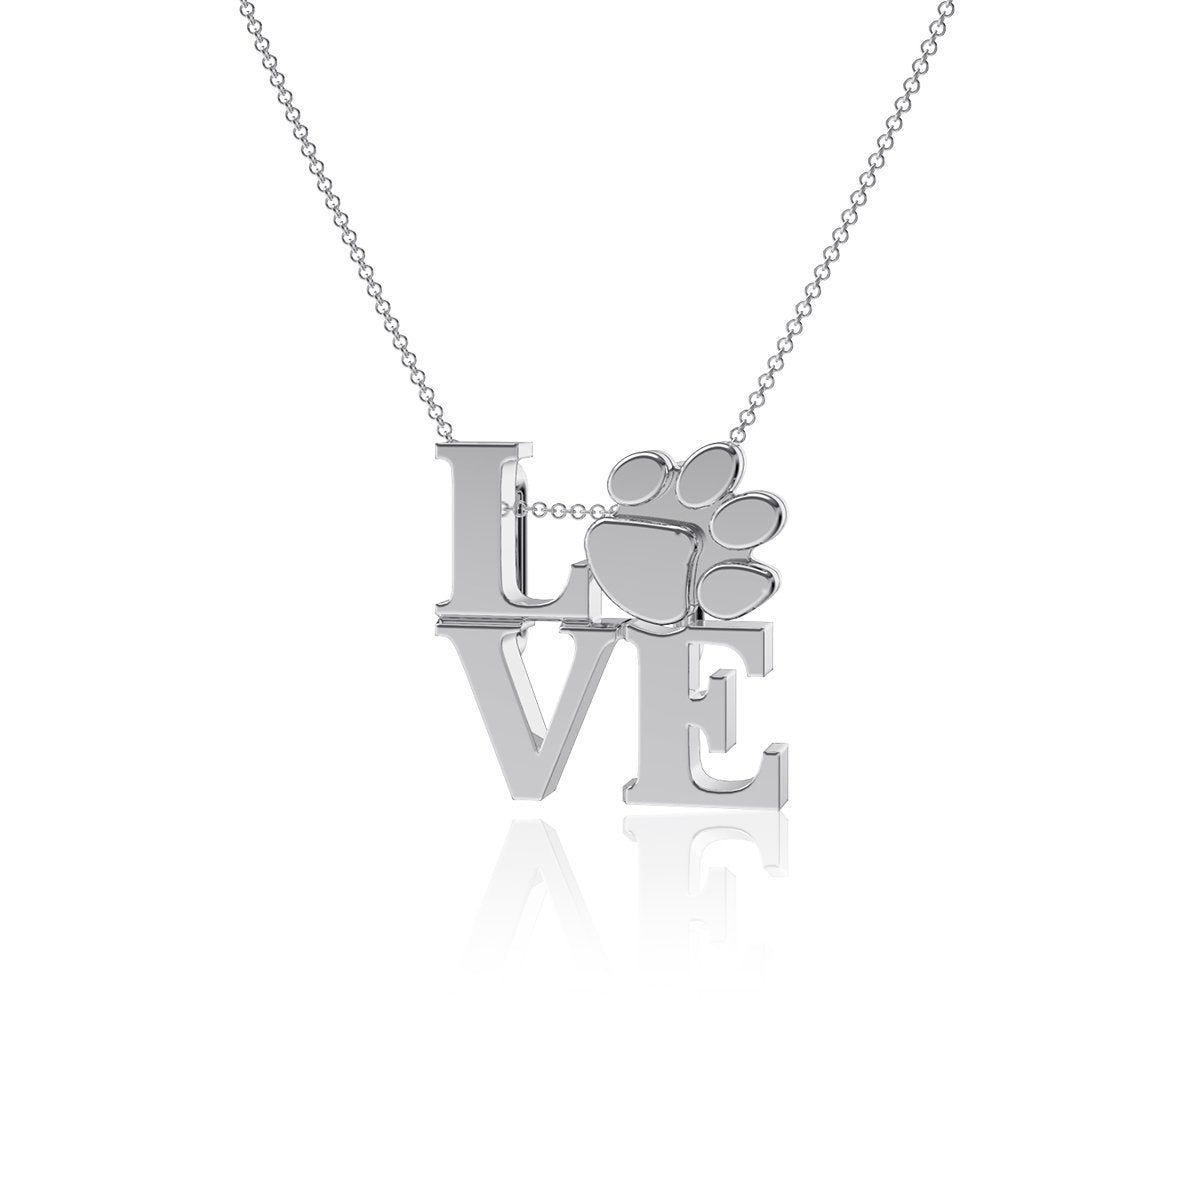 Paw Love Pendant Necklace